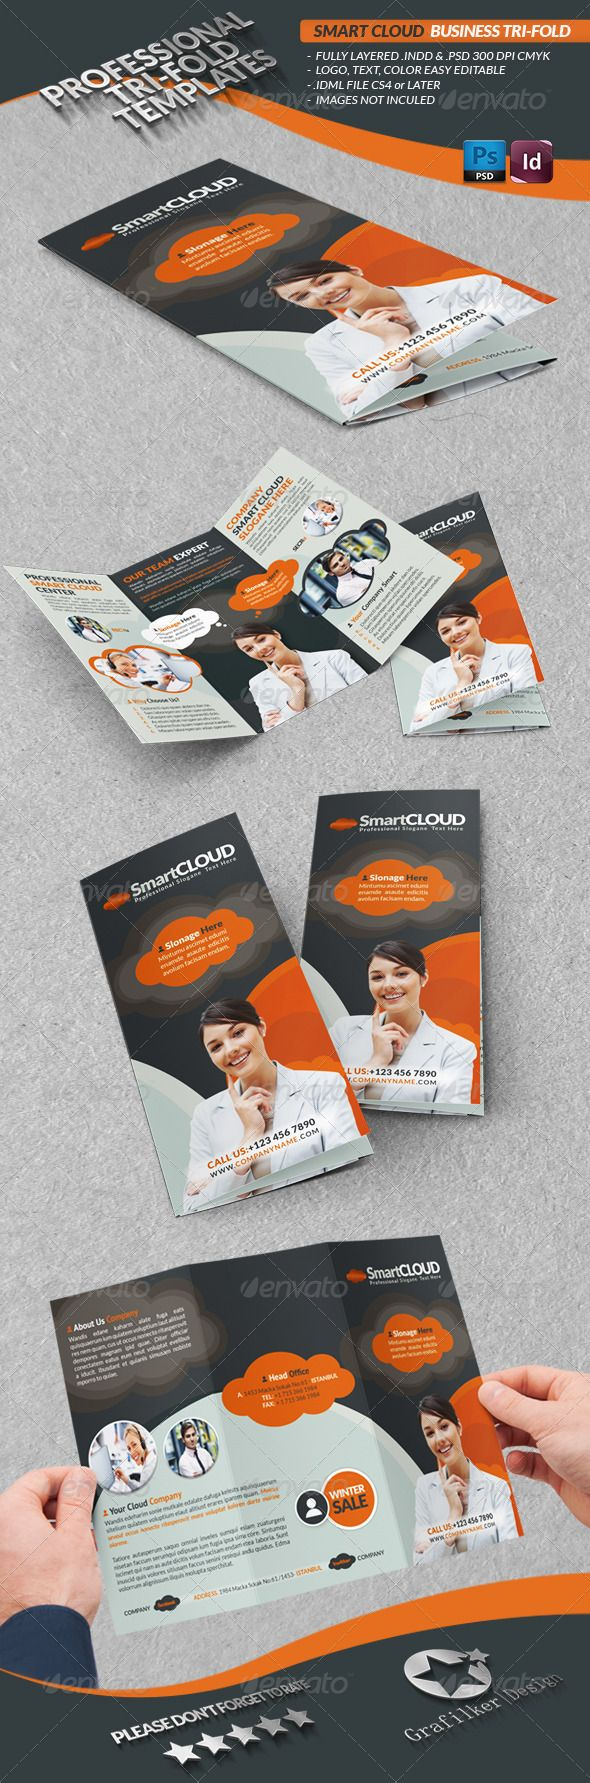 Smart Cloud Business TriFold Trifold, Trifold brochure